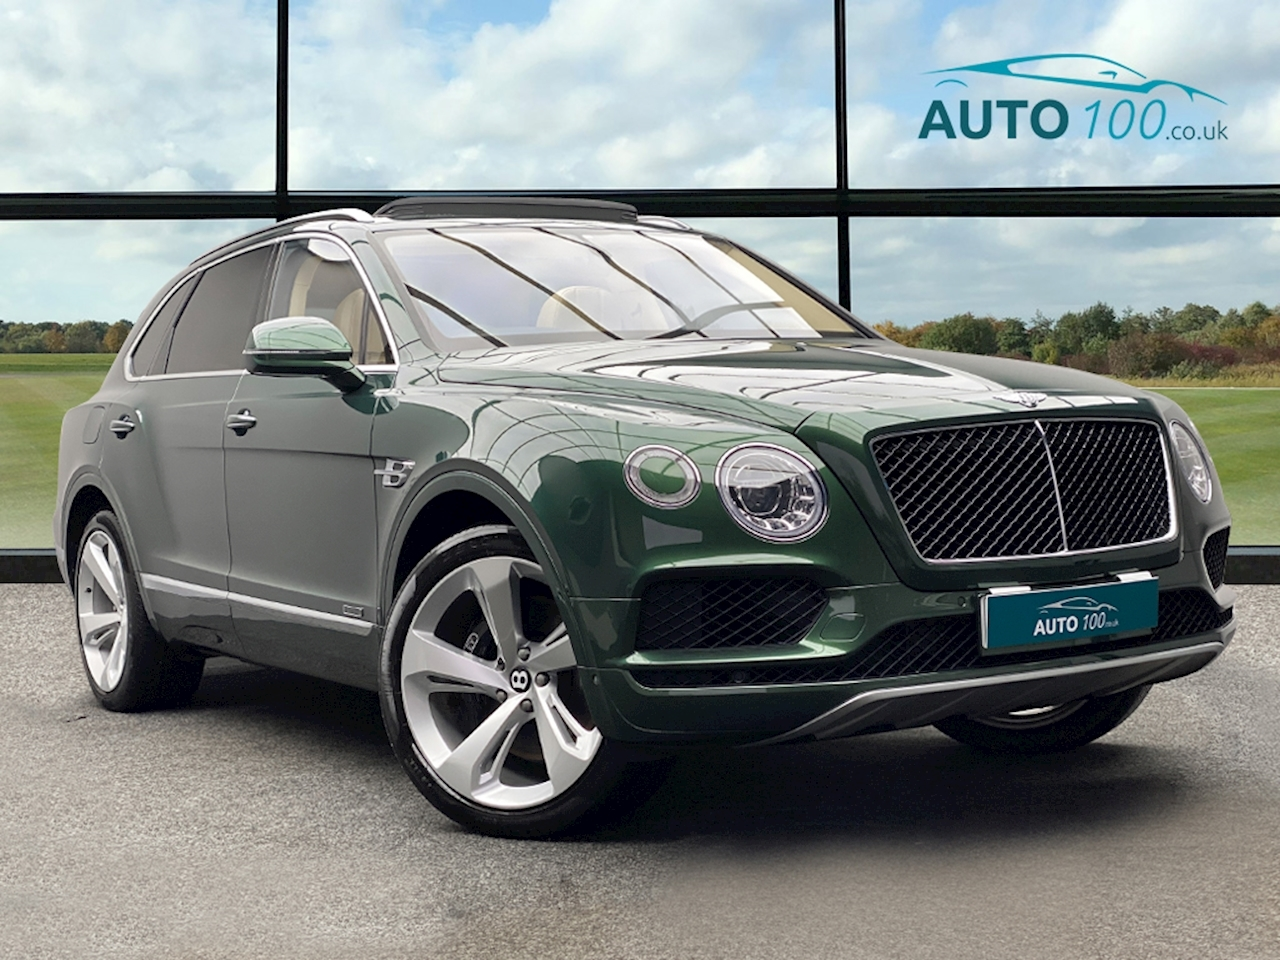 Bentley 4.0d V8 SUV 5dr Diesel Auto 4WD (s/s) 5 Seat (435 ps)